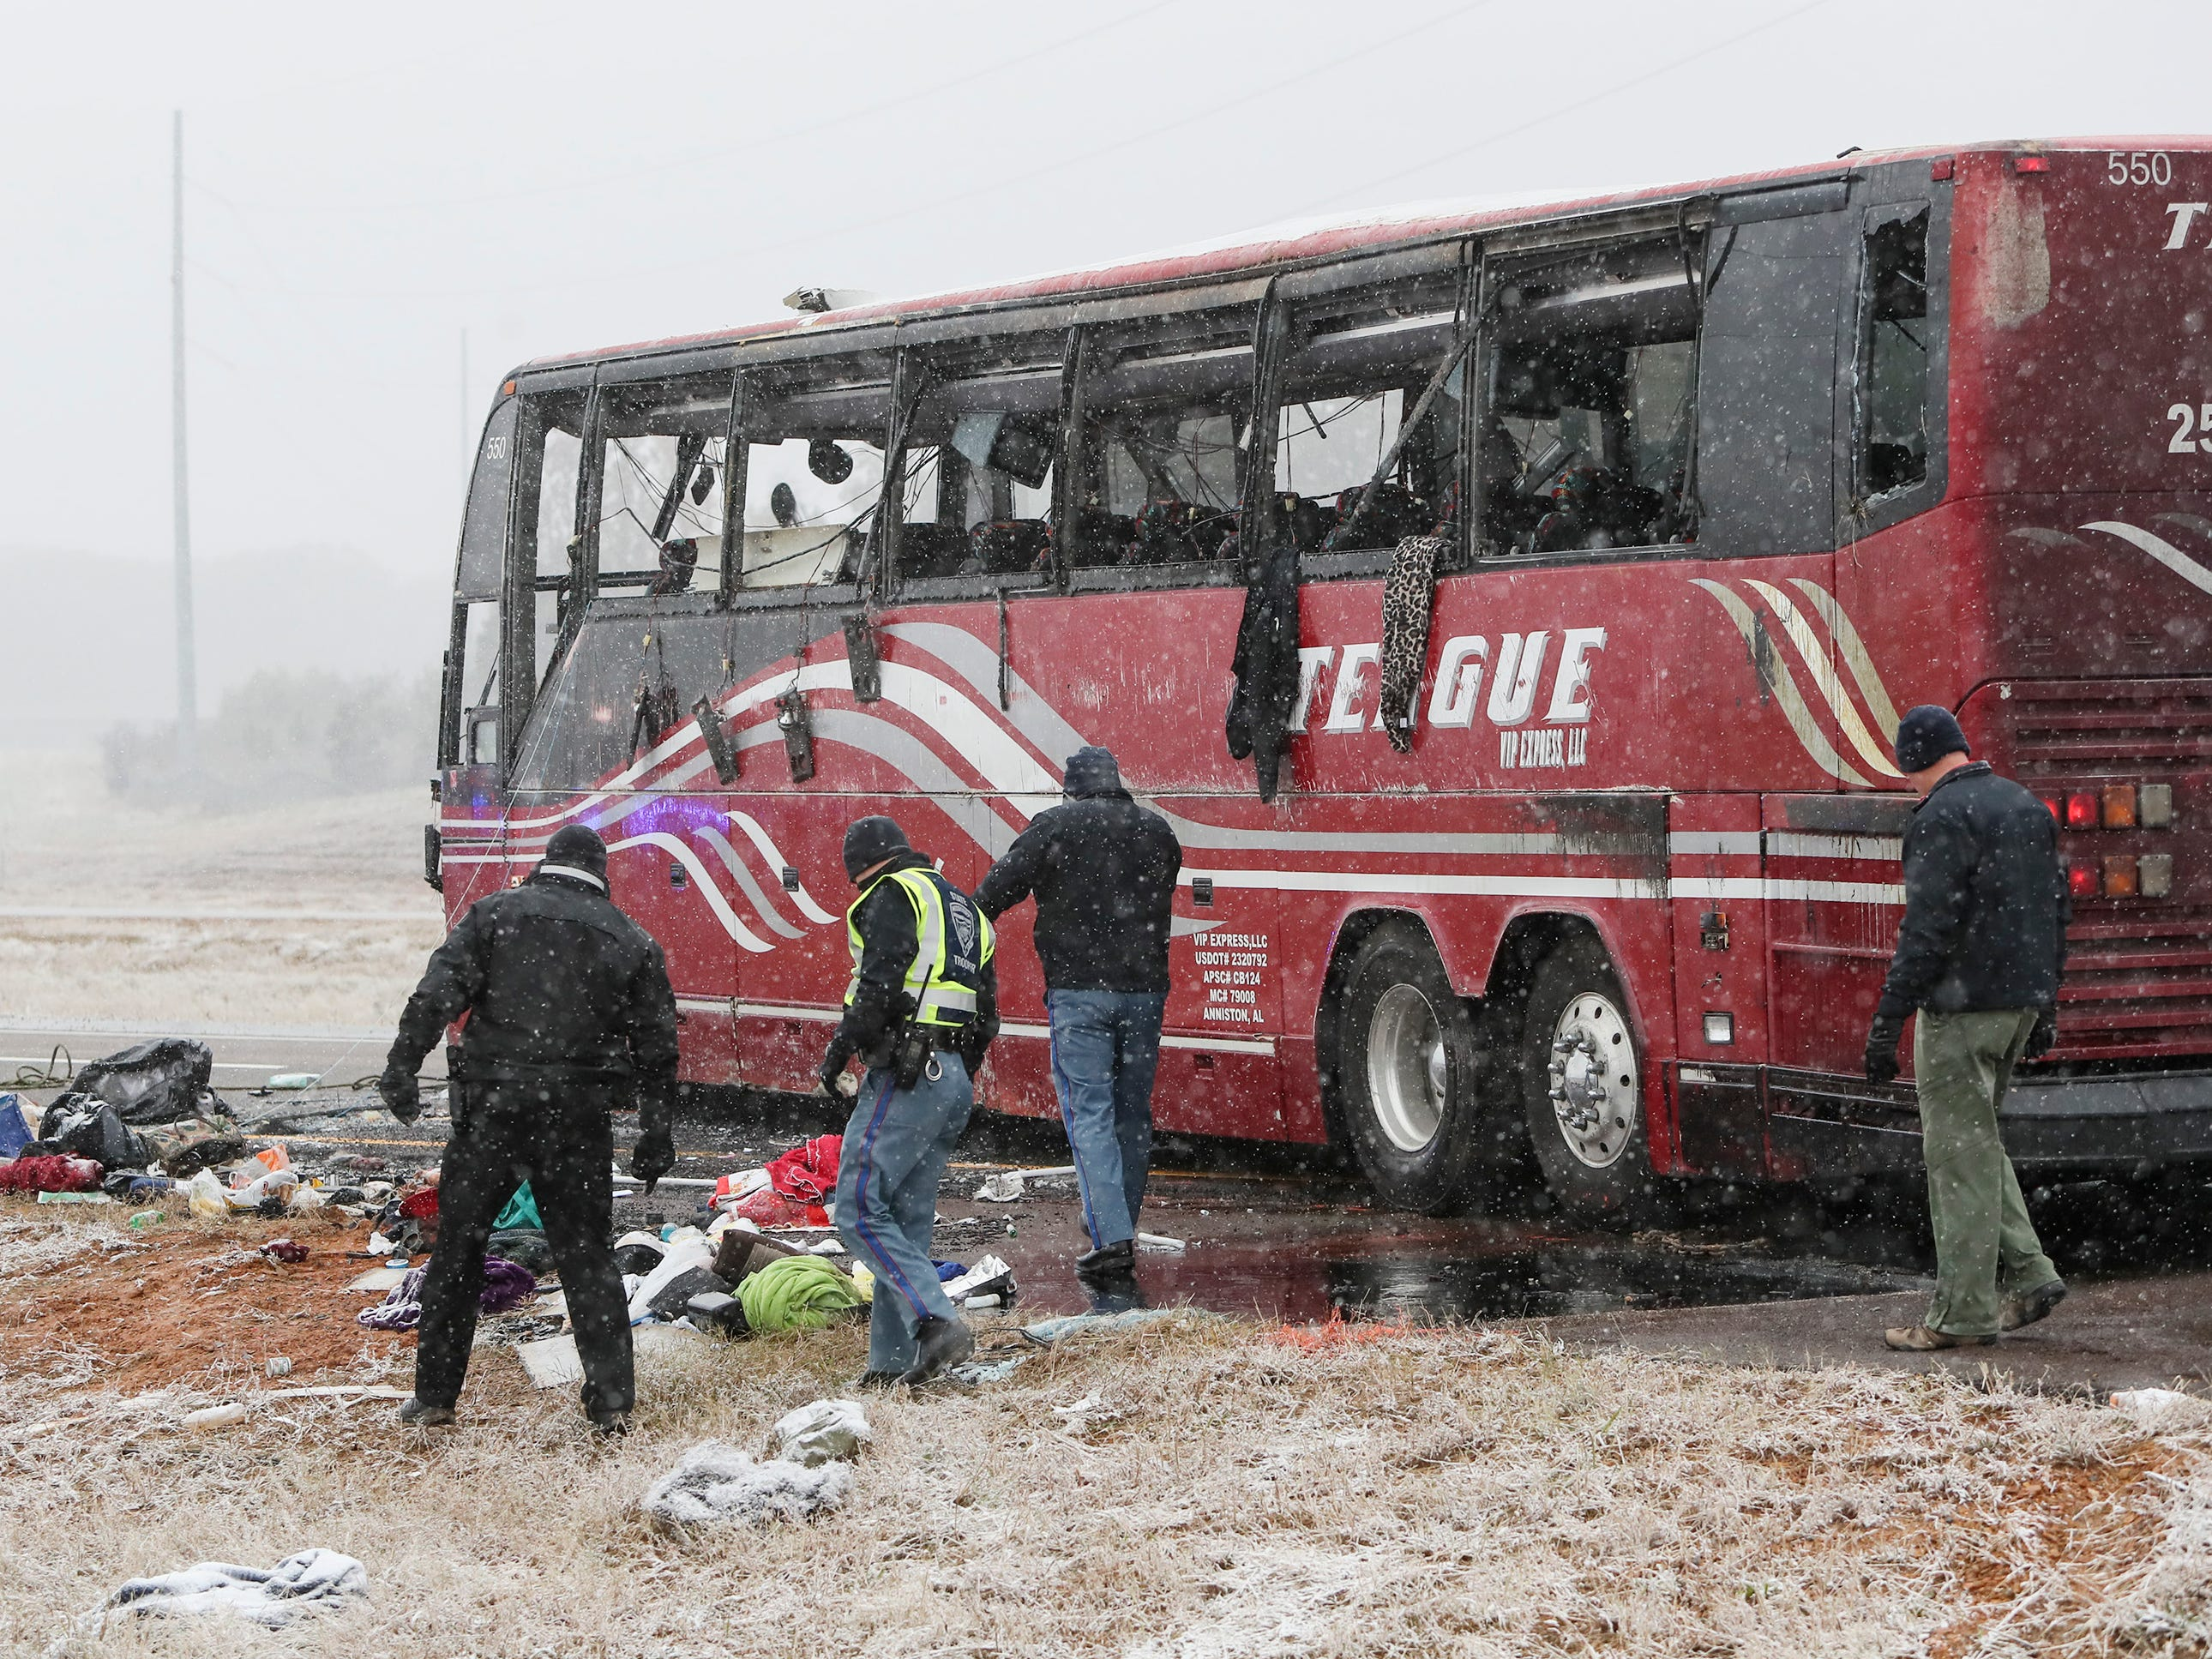 Law enforcement officers inspect the site where a tour bus carrying passengers overturned just after midday, Wednesday, Nov. 14, 2018, in DeSoto County, Miss. The crash came as a winter storm has been raking parts of the South.